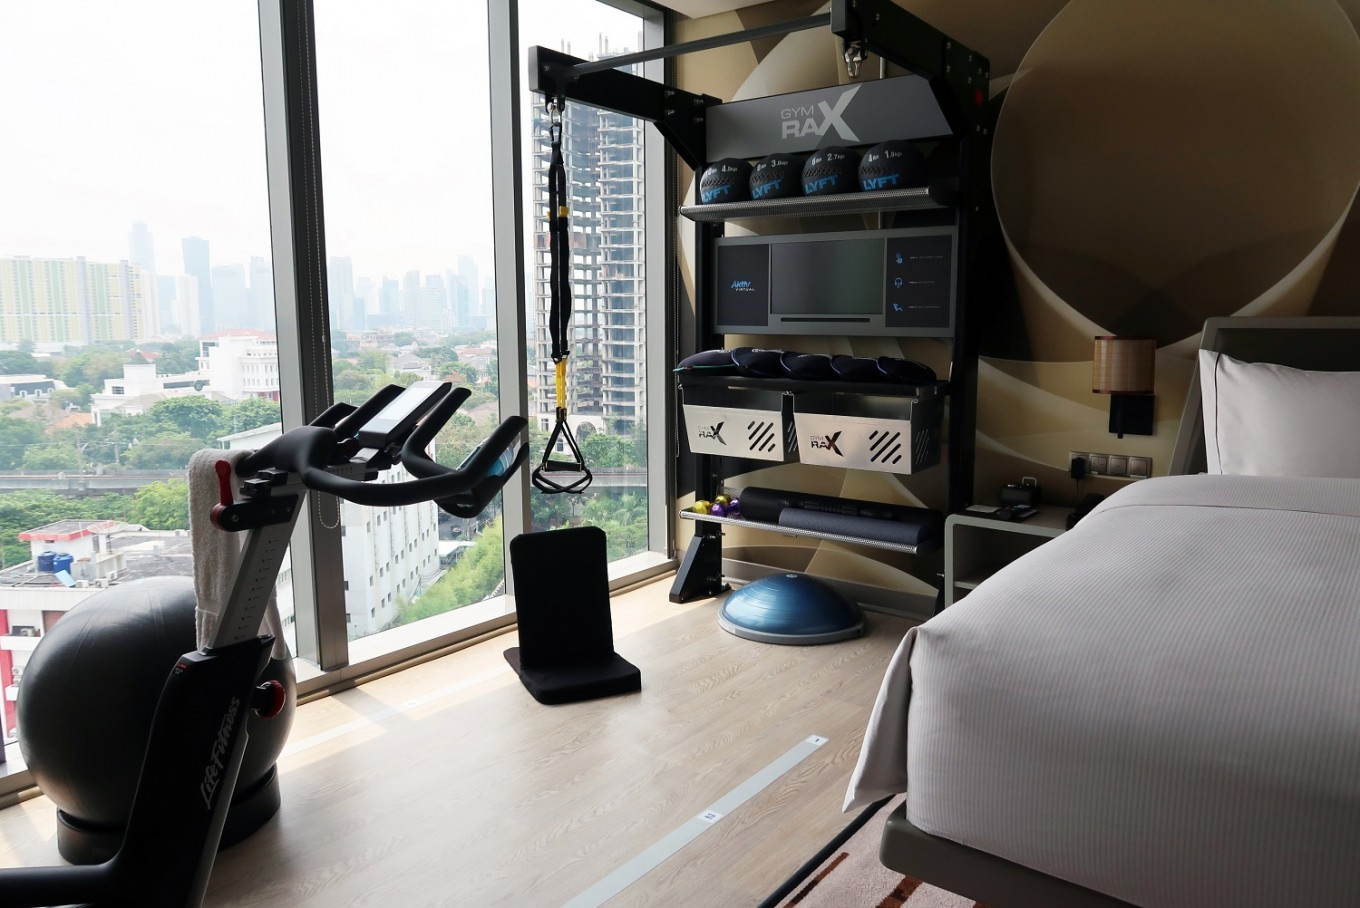 Feeling lazy?: Jakarta hotel offers fitness equipment in rooms